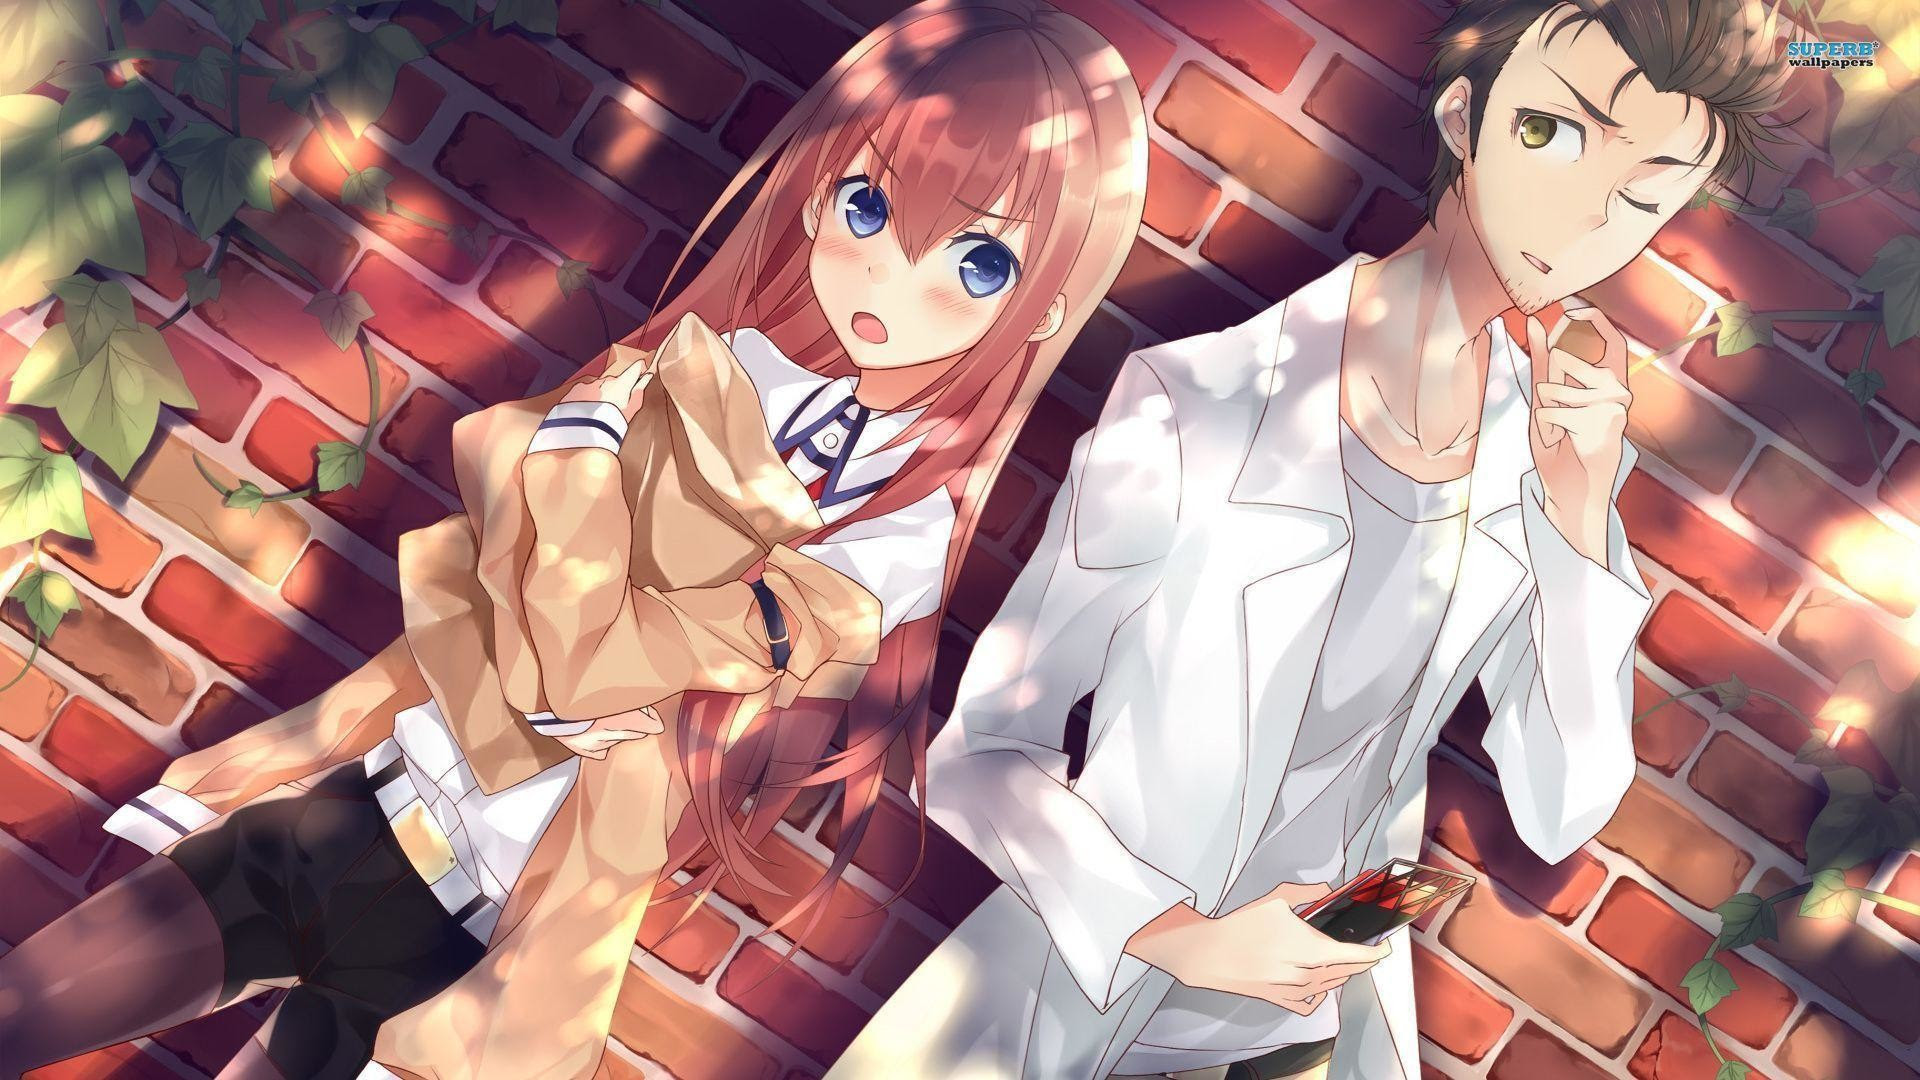 16 Cute Anime Couple Wallpaper For Iphone Sachi Wallpaper